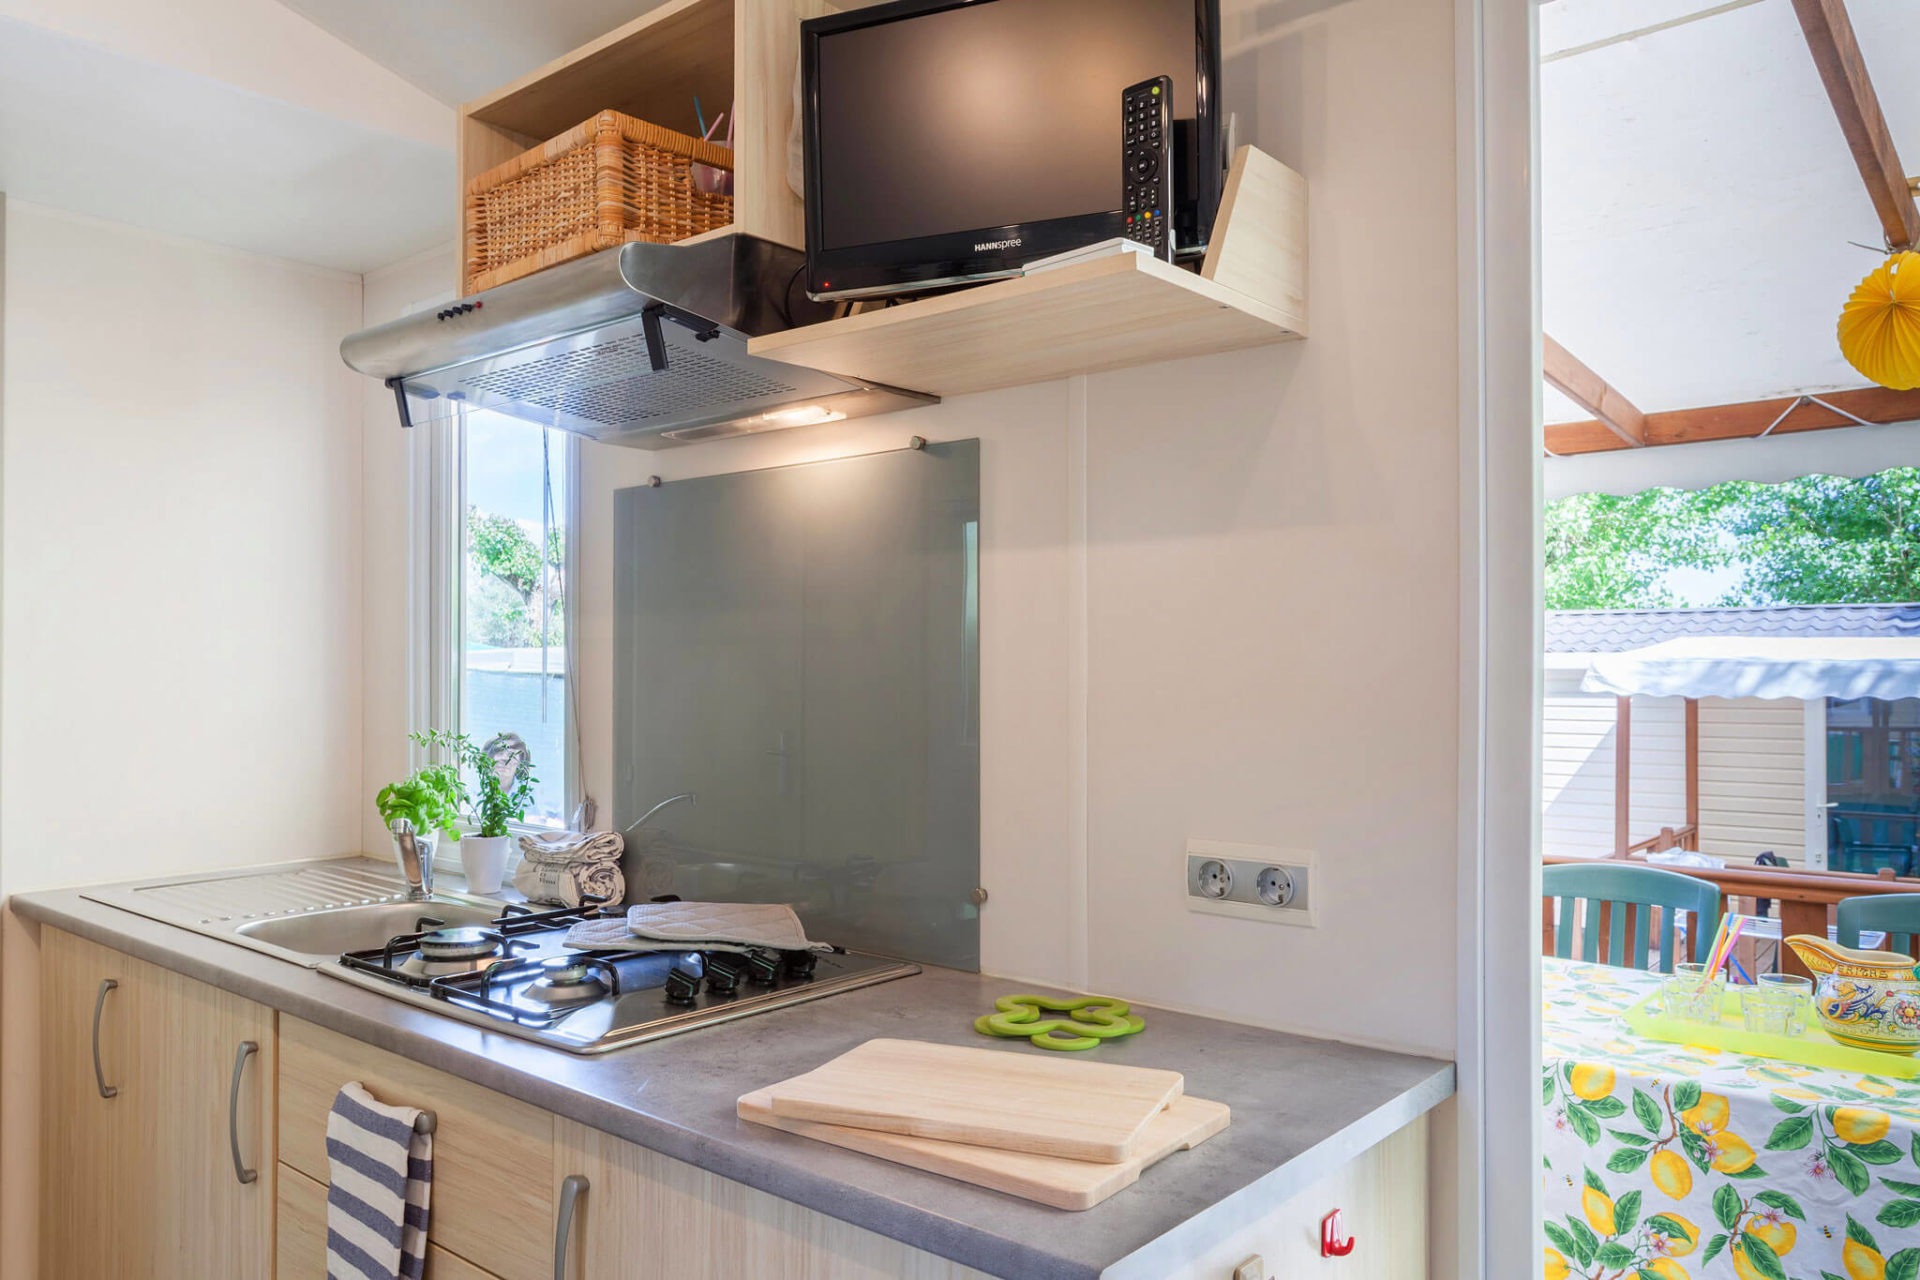 Two Bedroom Mobile Home - Camping Village Piantelle on different type of styles home, advantages of mobile homes, colors of mobile homes, toy truck mobile homes, mediterranean style homes, manufacturers of mobile homes, various styles of homes, types of prefab homes, semis mobile homes, different kinds of phones in cuba, dimensions of mobile homes, all types of homes, construction of mobile homes, luxury mobile homes, benefits of mobile homes, designs of mobile homes, mini mobile homes, one room mobile homes,